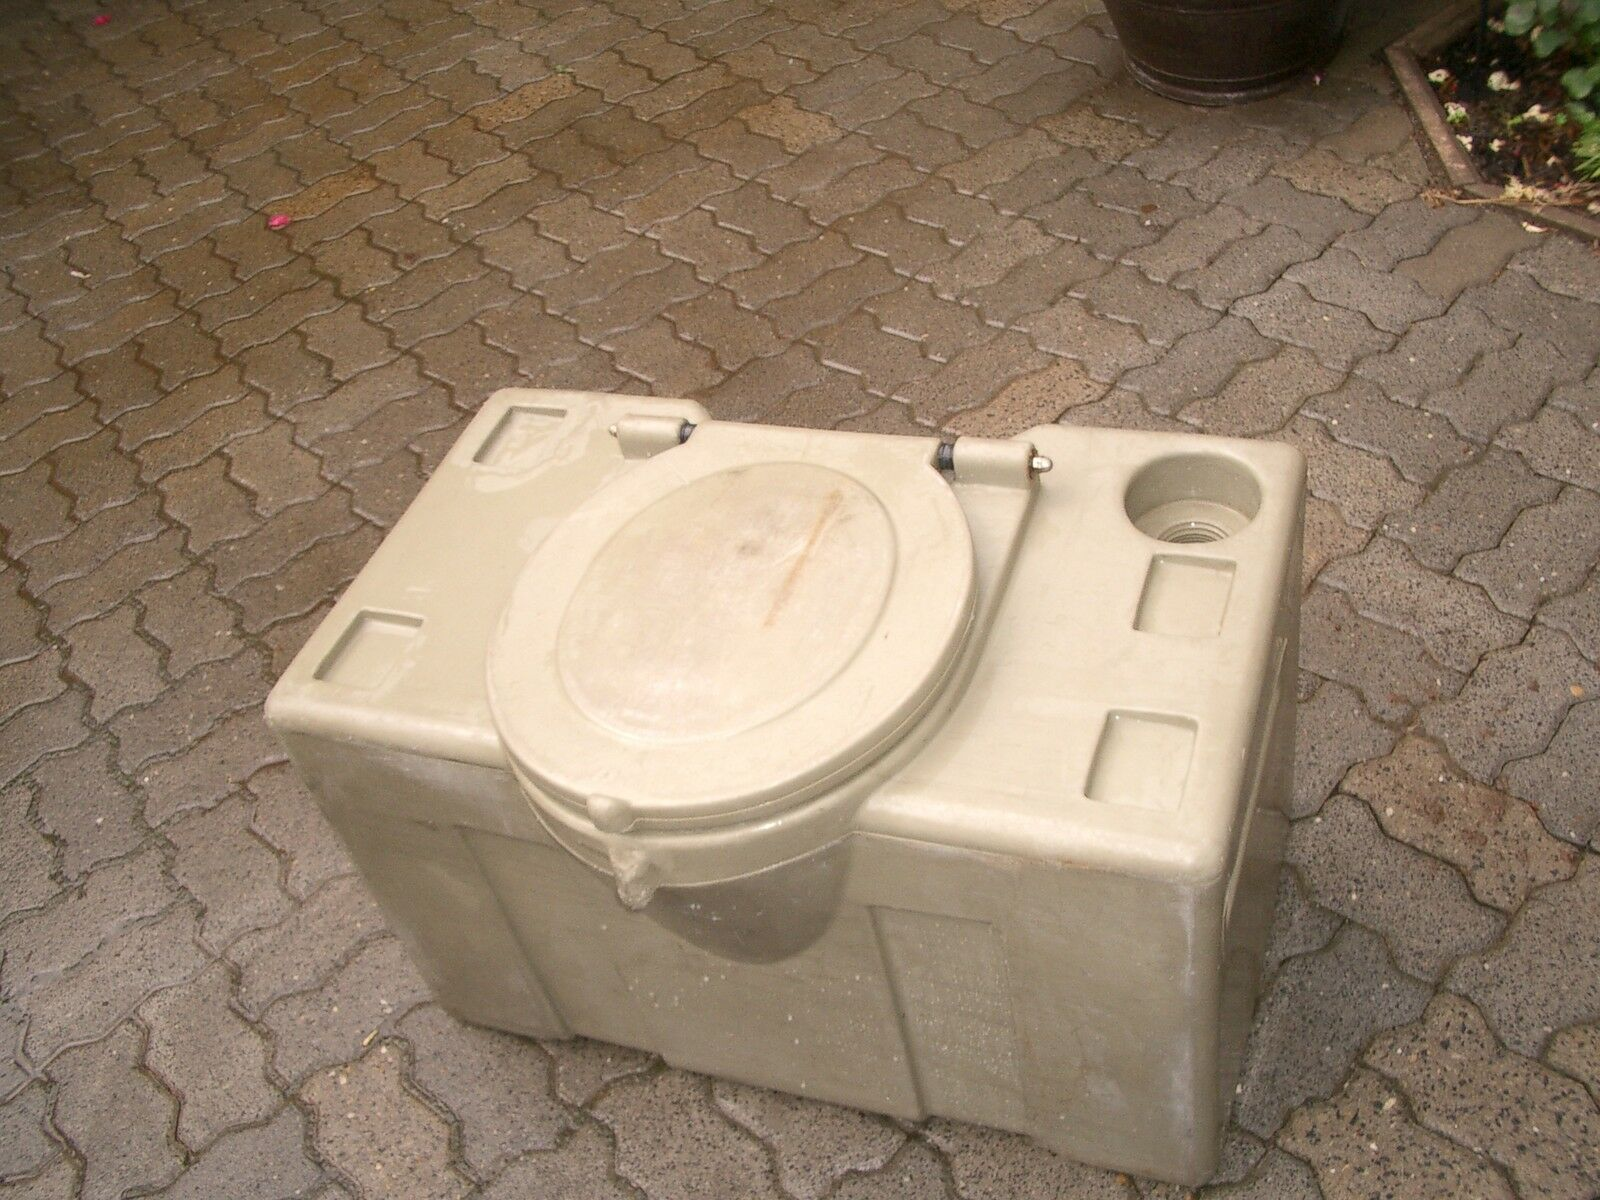 PVC Toaletttank Exchange Tank for Camping Garden Cellar or Construction Site Toilet Urinale